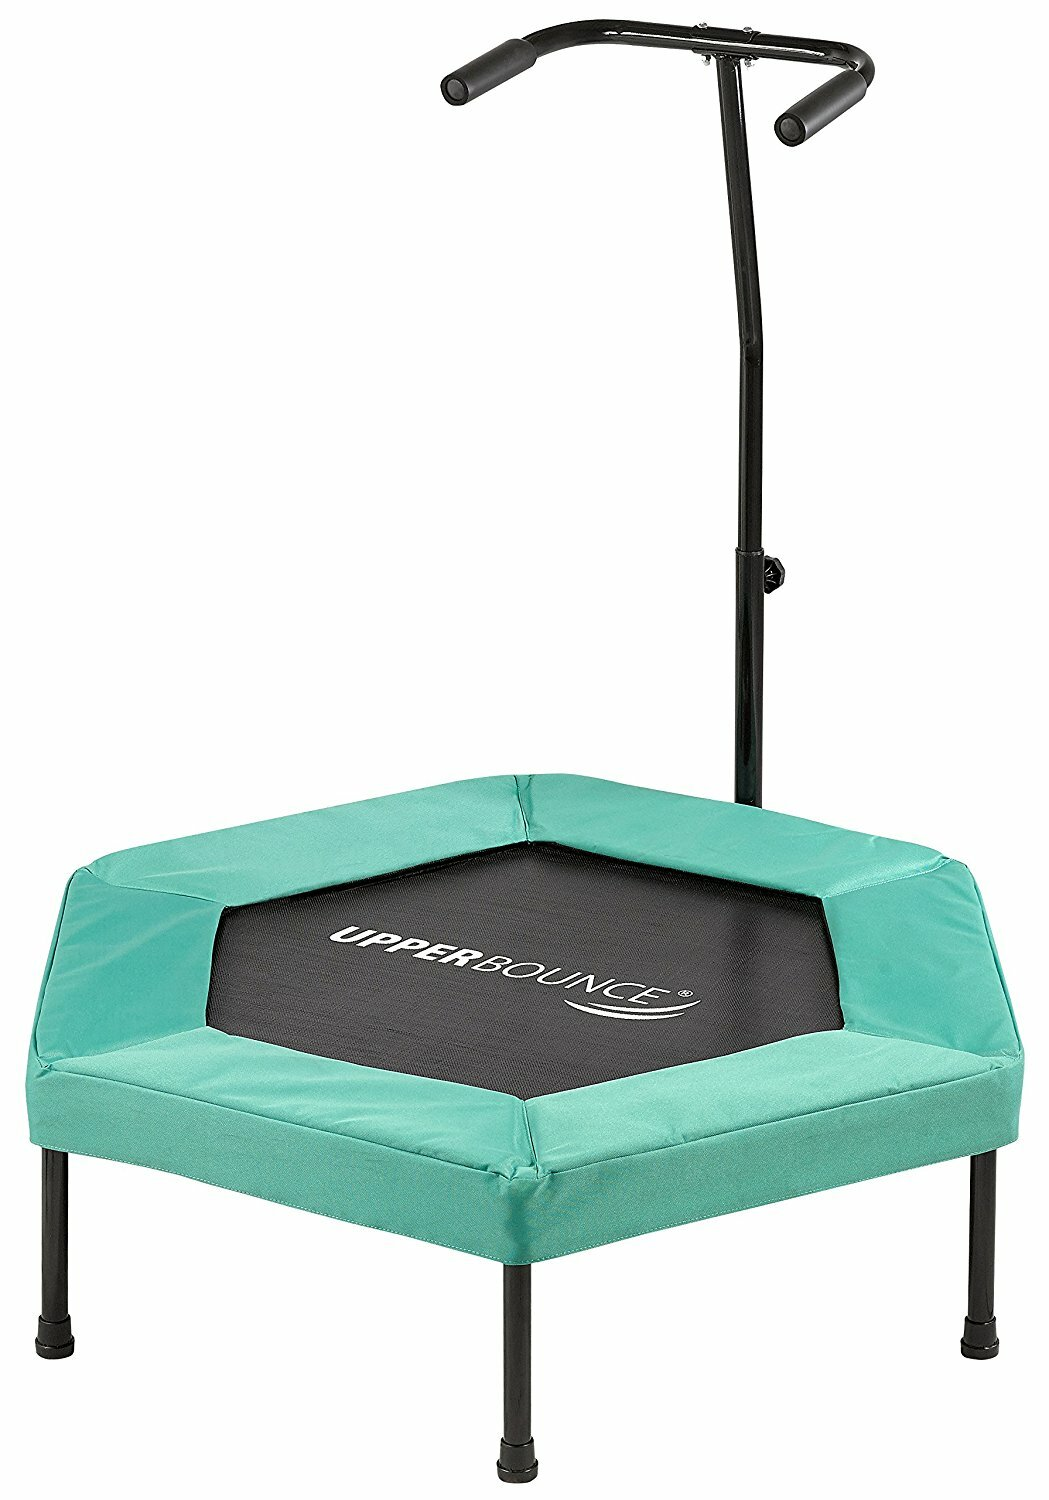 upper bounce fitness 3 hexagonal mini trampoline with bungee cord